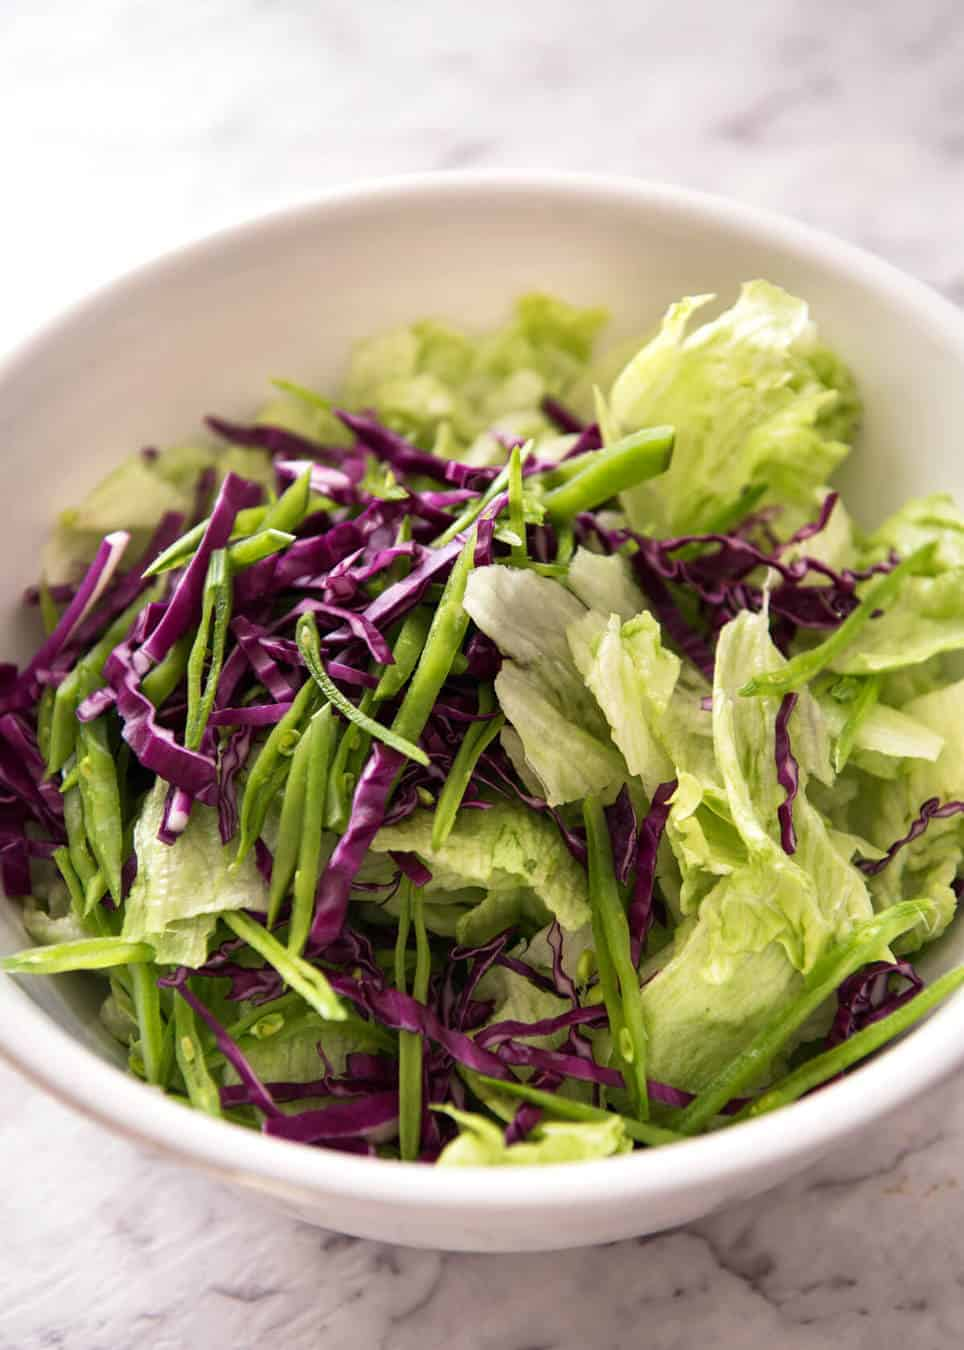 Iceberg Lettuce Salad With Dill Www Recipetineats Com